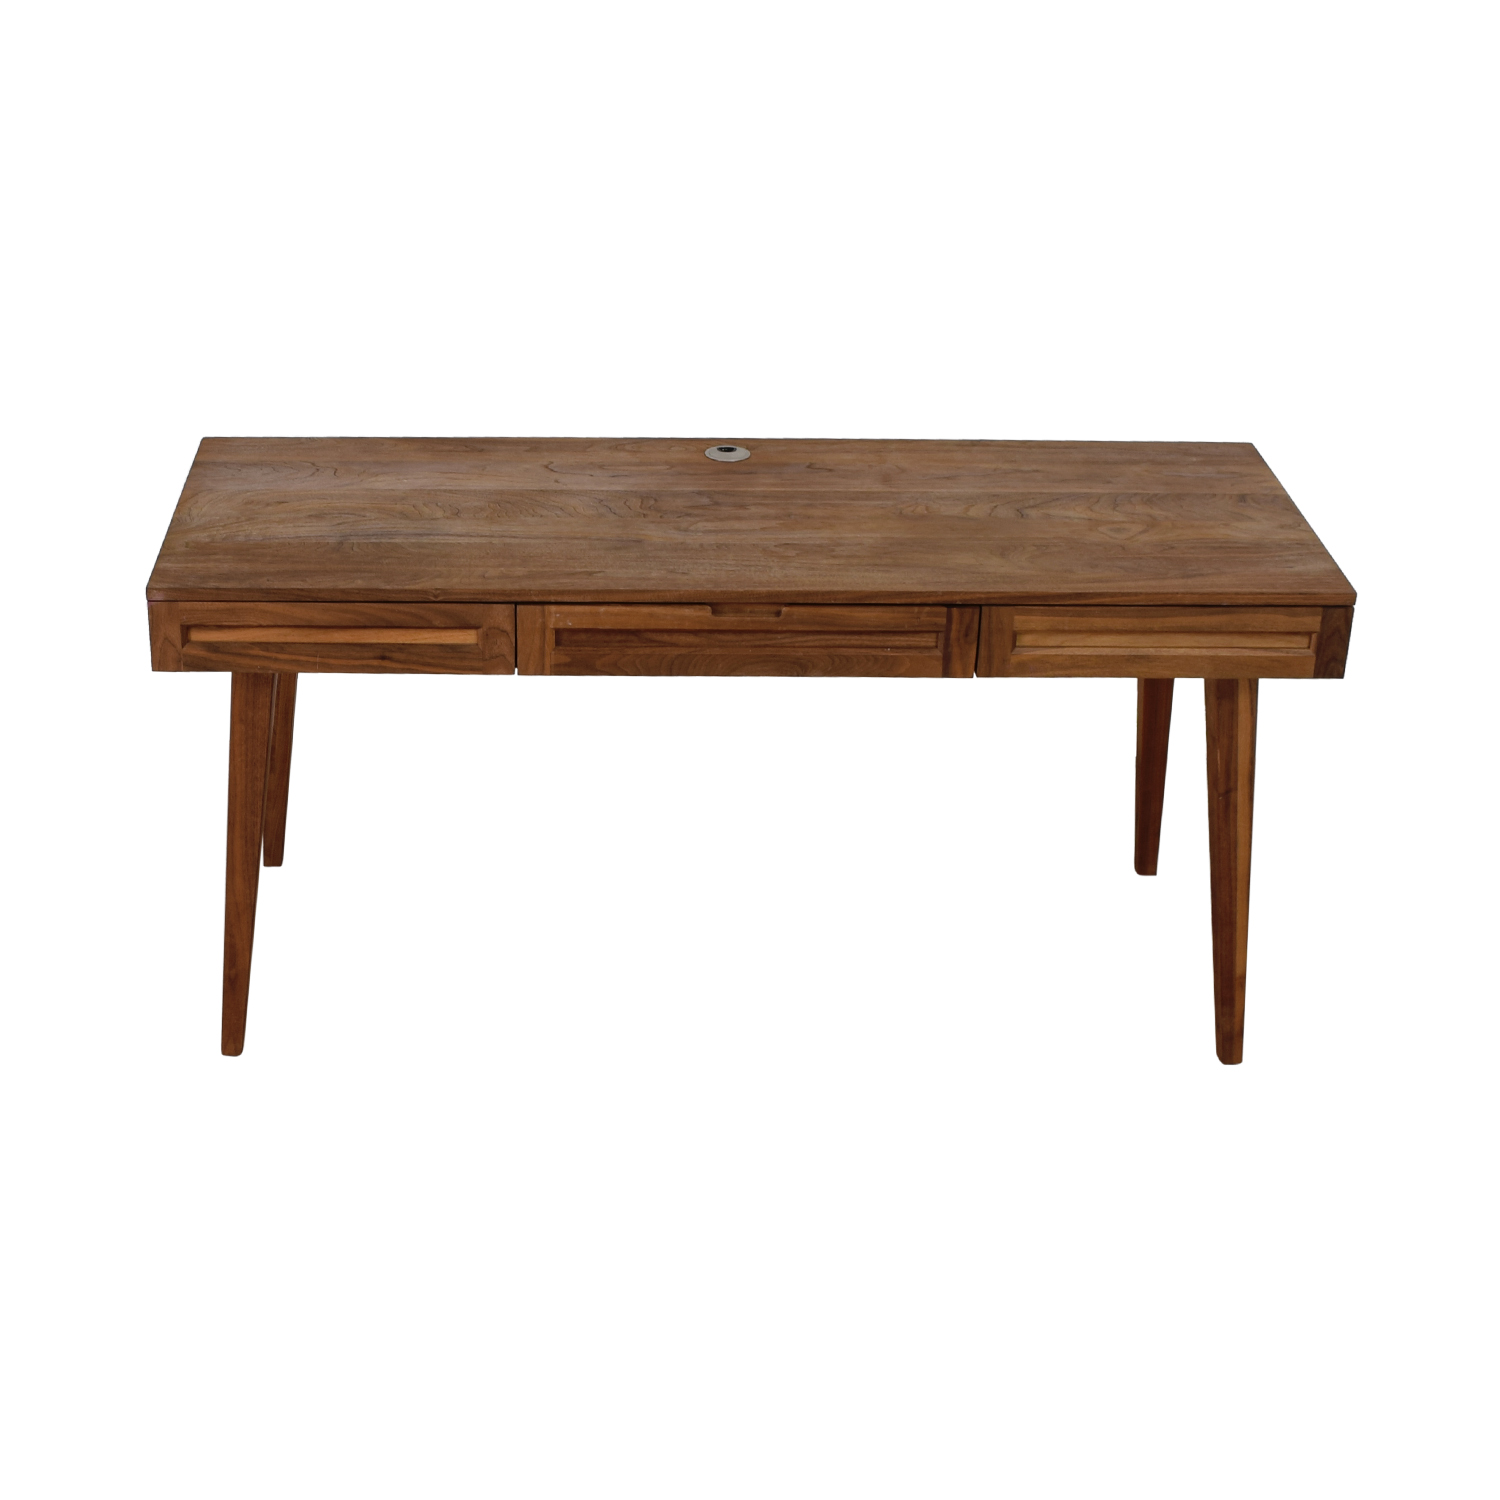 Highland Collection Highland Collection Maple Wood Desk price